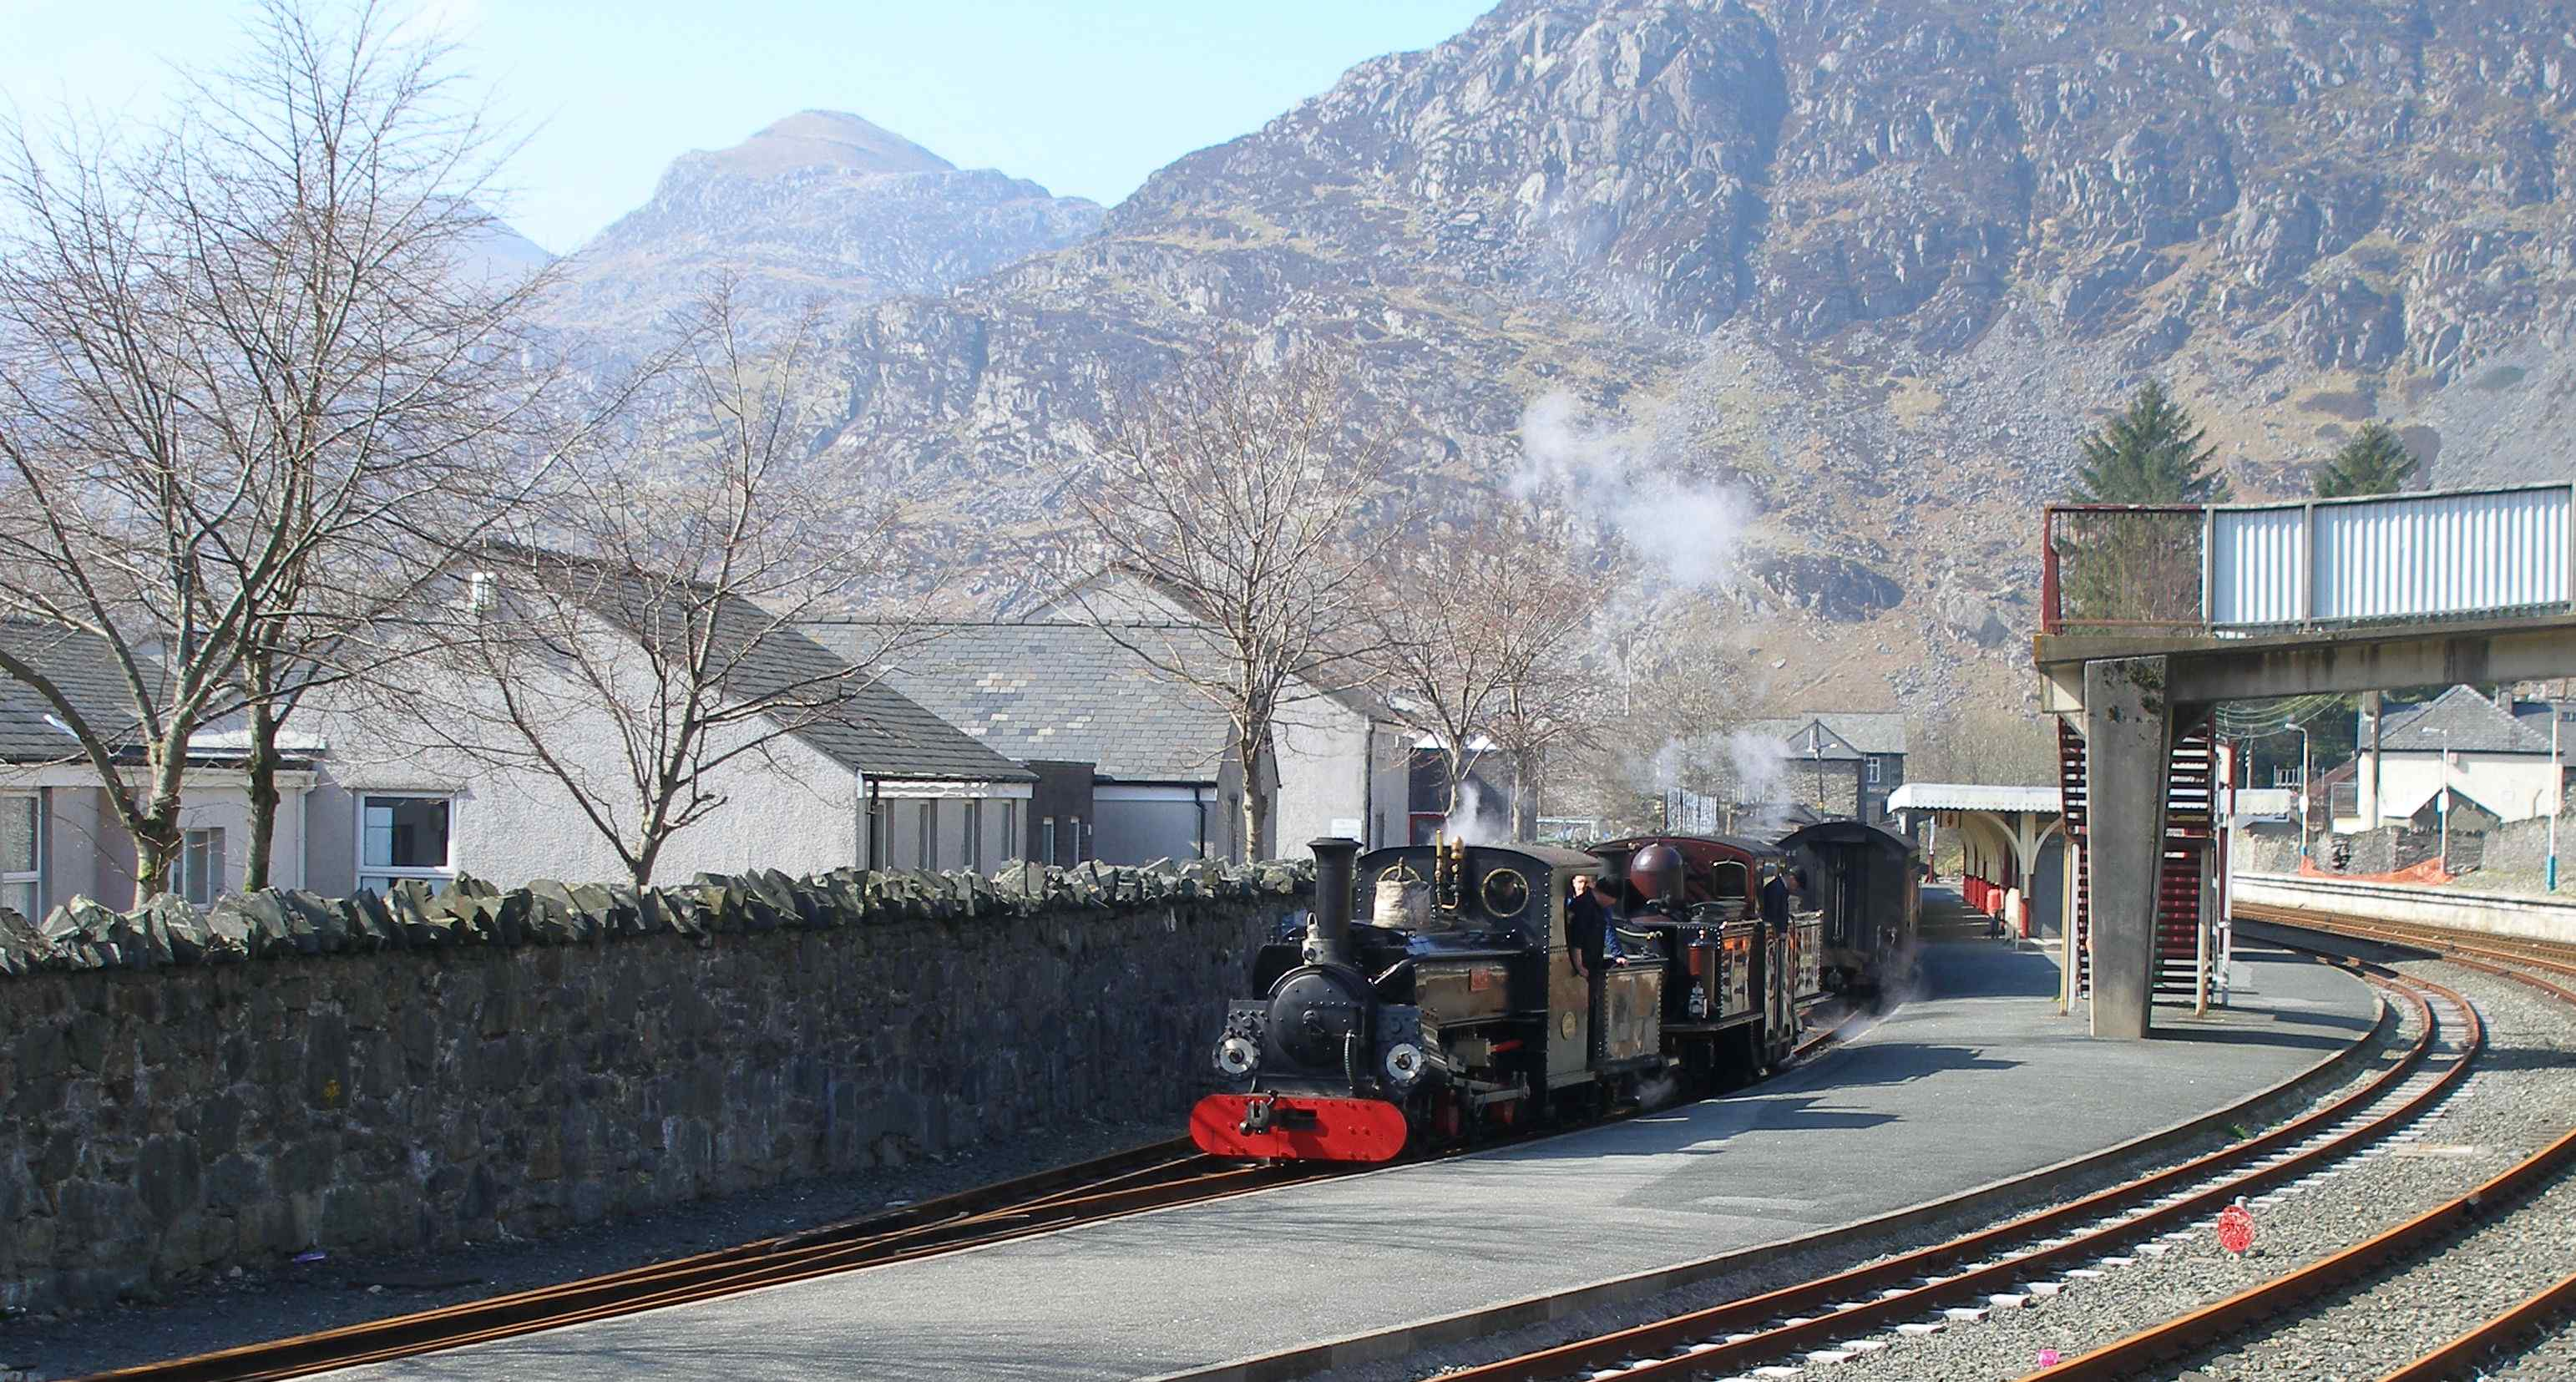 'Merddin Emrys' and 'Linda' running round at Blaenau Ffestiniog. The Network Rail standard gauge line in the foreground once ran through to Bala and Bala Junction; latterly servicing the power station at Trawsfynydd, and now terminates at a buffer stop to form a headshunt. Track remains to the Power Station, and has recently been cleared by local volunteers as part of a rail cycle tourist attraction proposal, although the infrastructure would require a major maintenance effort for trains to be restored.